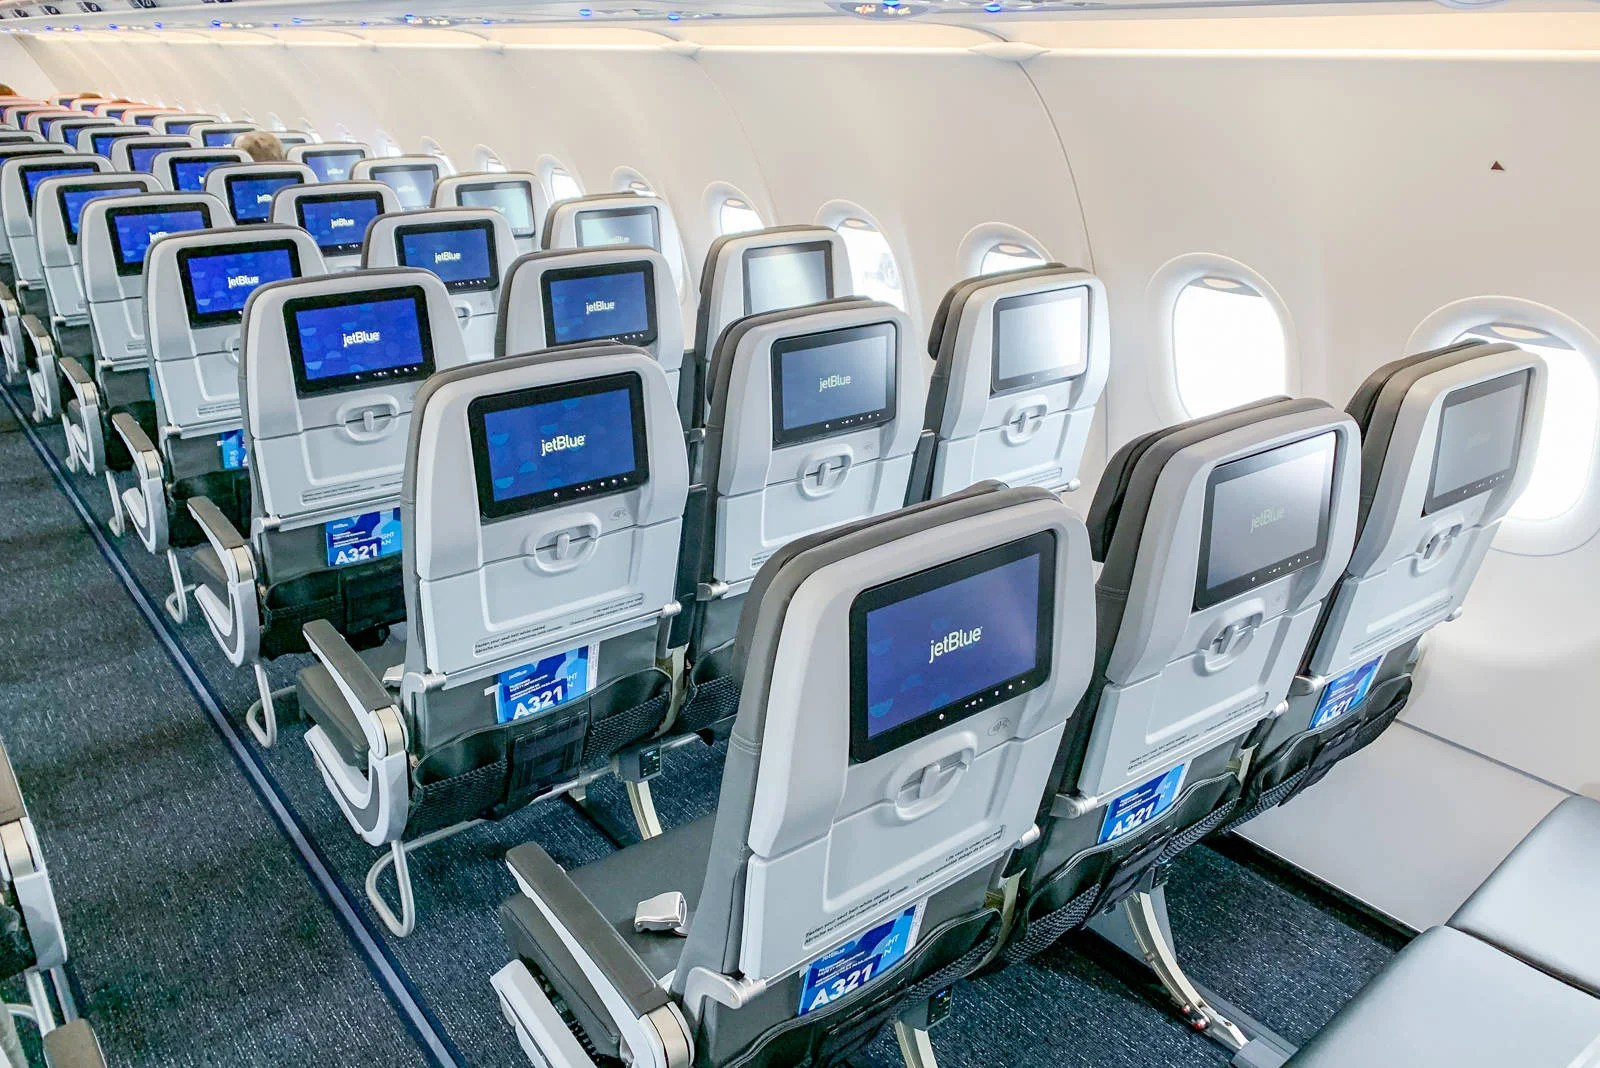 All about airline-ticket expiration policies